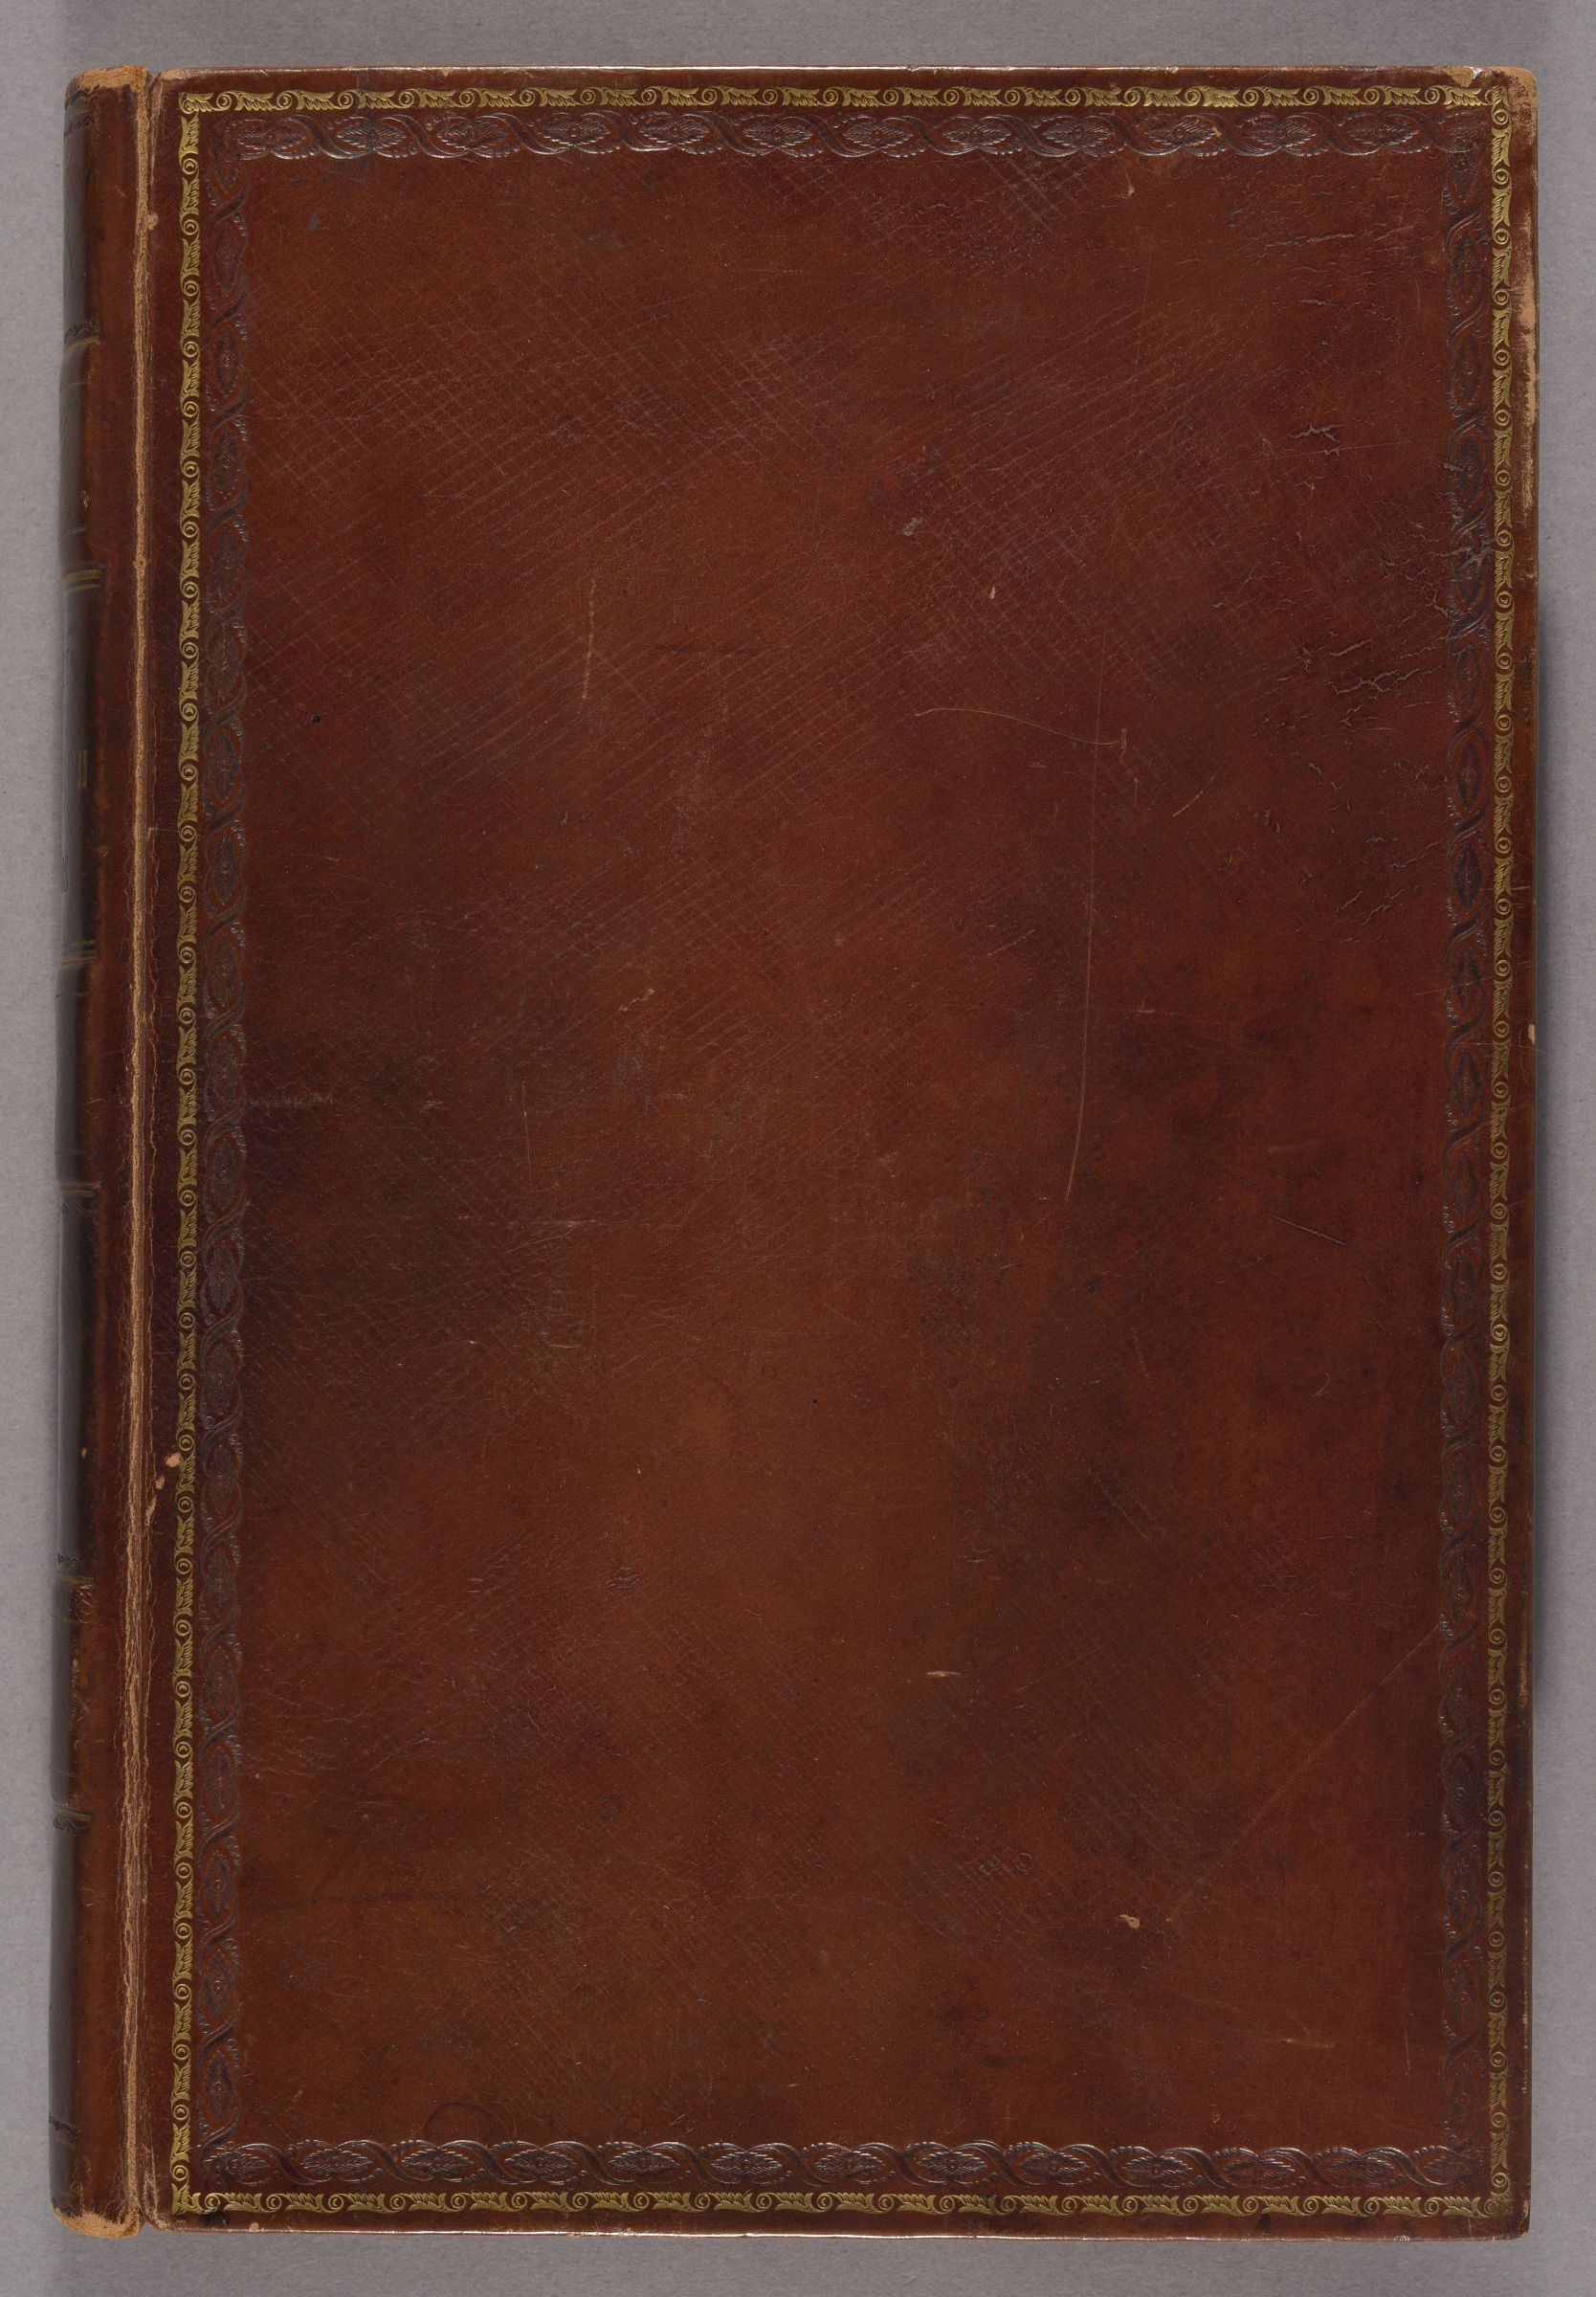 Record book of First Religious Society in Roxbury. Includes membership lists, 1630-1775; baptisms, 1641-1688, 1750-1775; funerals, 1641- 1688; church votes and proceedings, 1753-1774; etc., ca. 1630-1775.